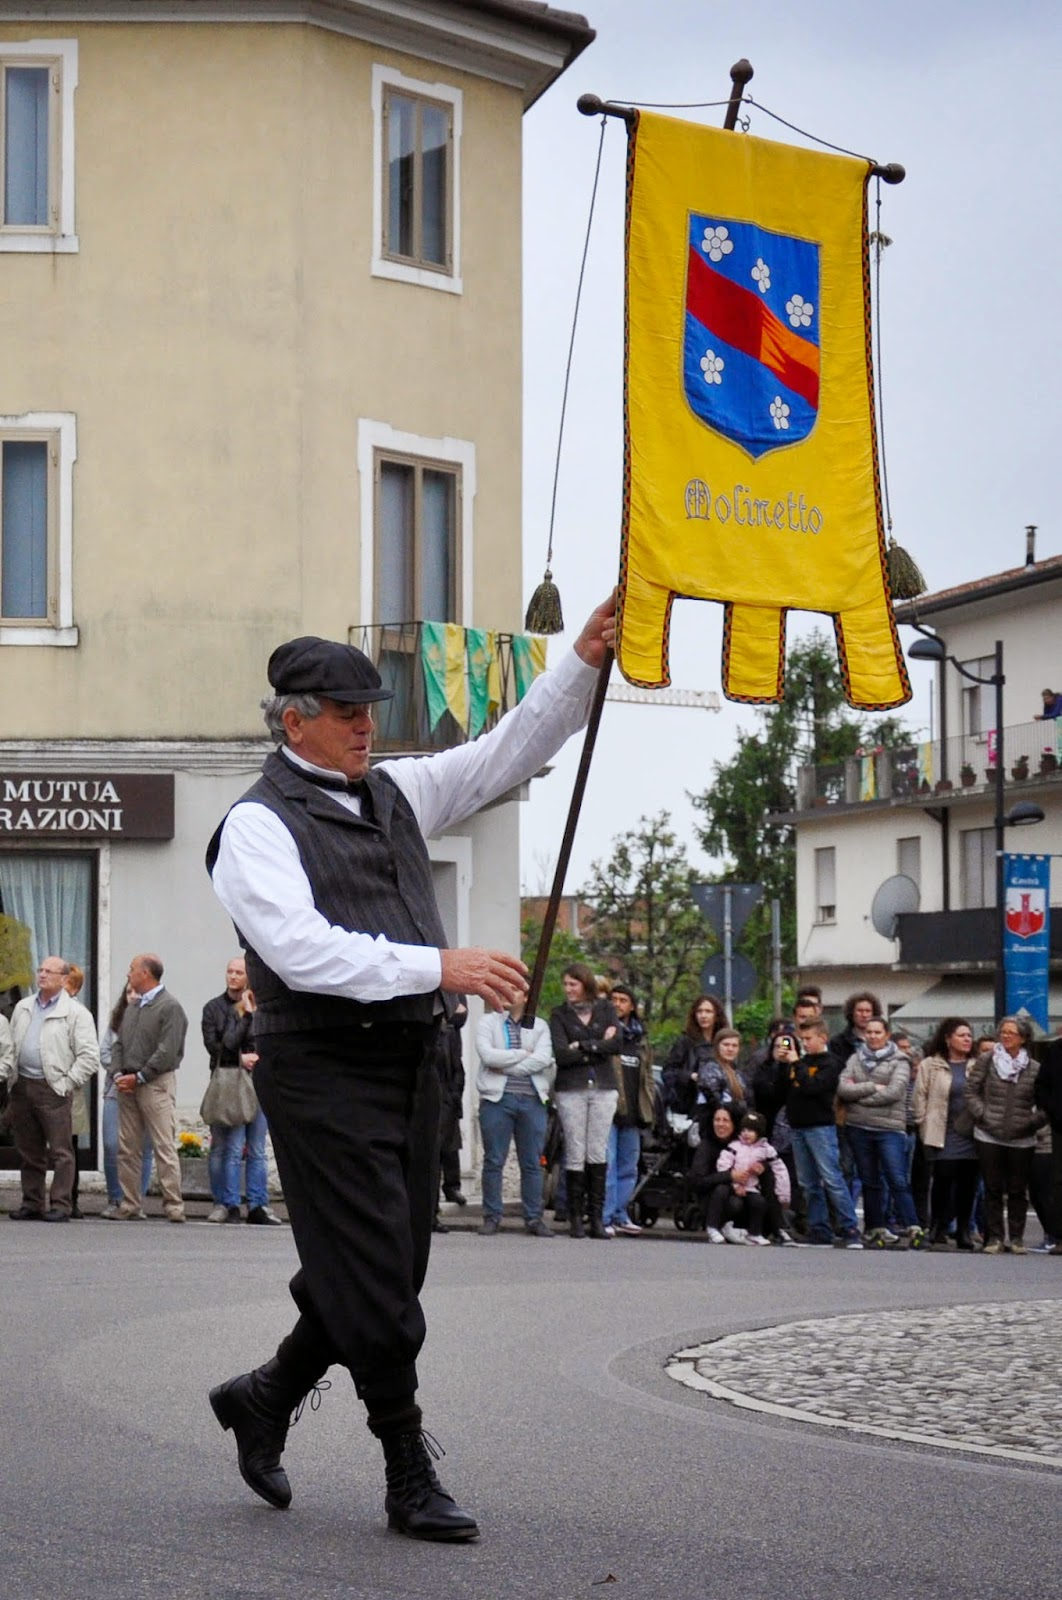 A flag bearer at the Parade, Donkey Race, Romano d'Ezzelino, Veneto, Italy